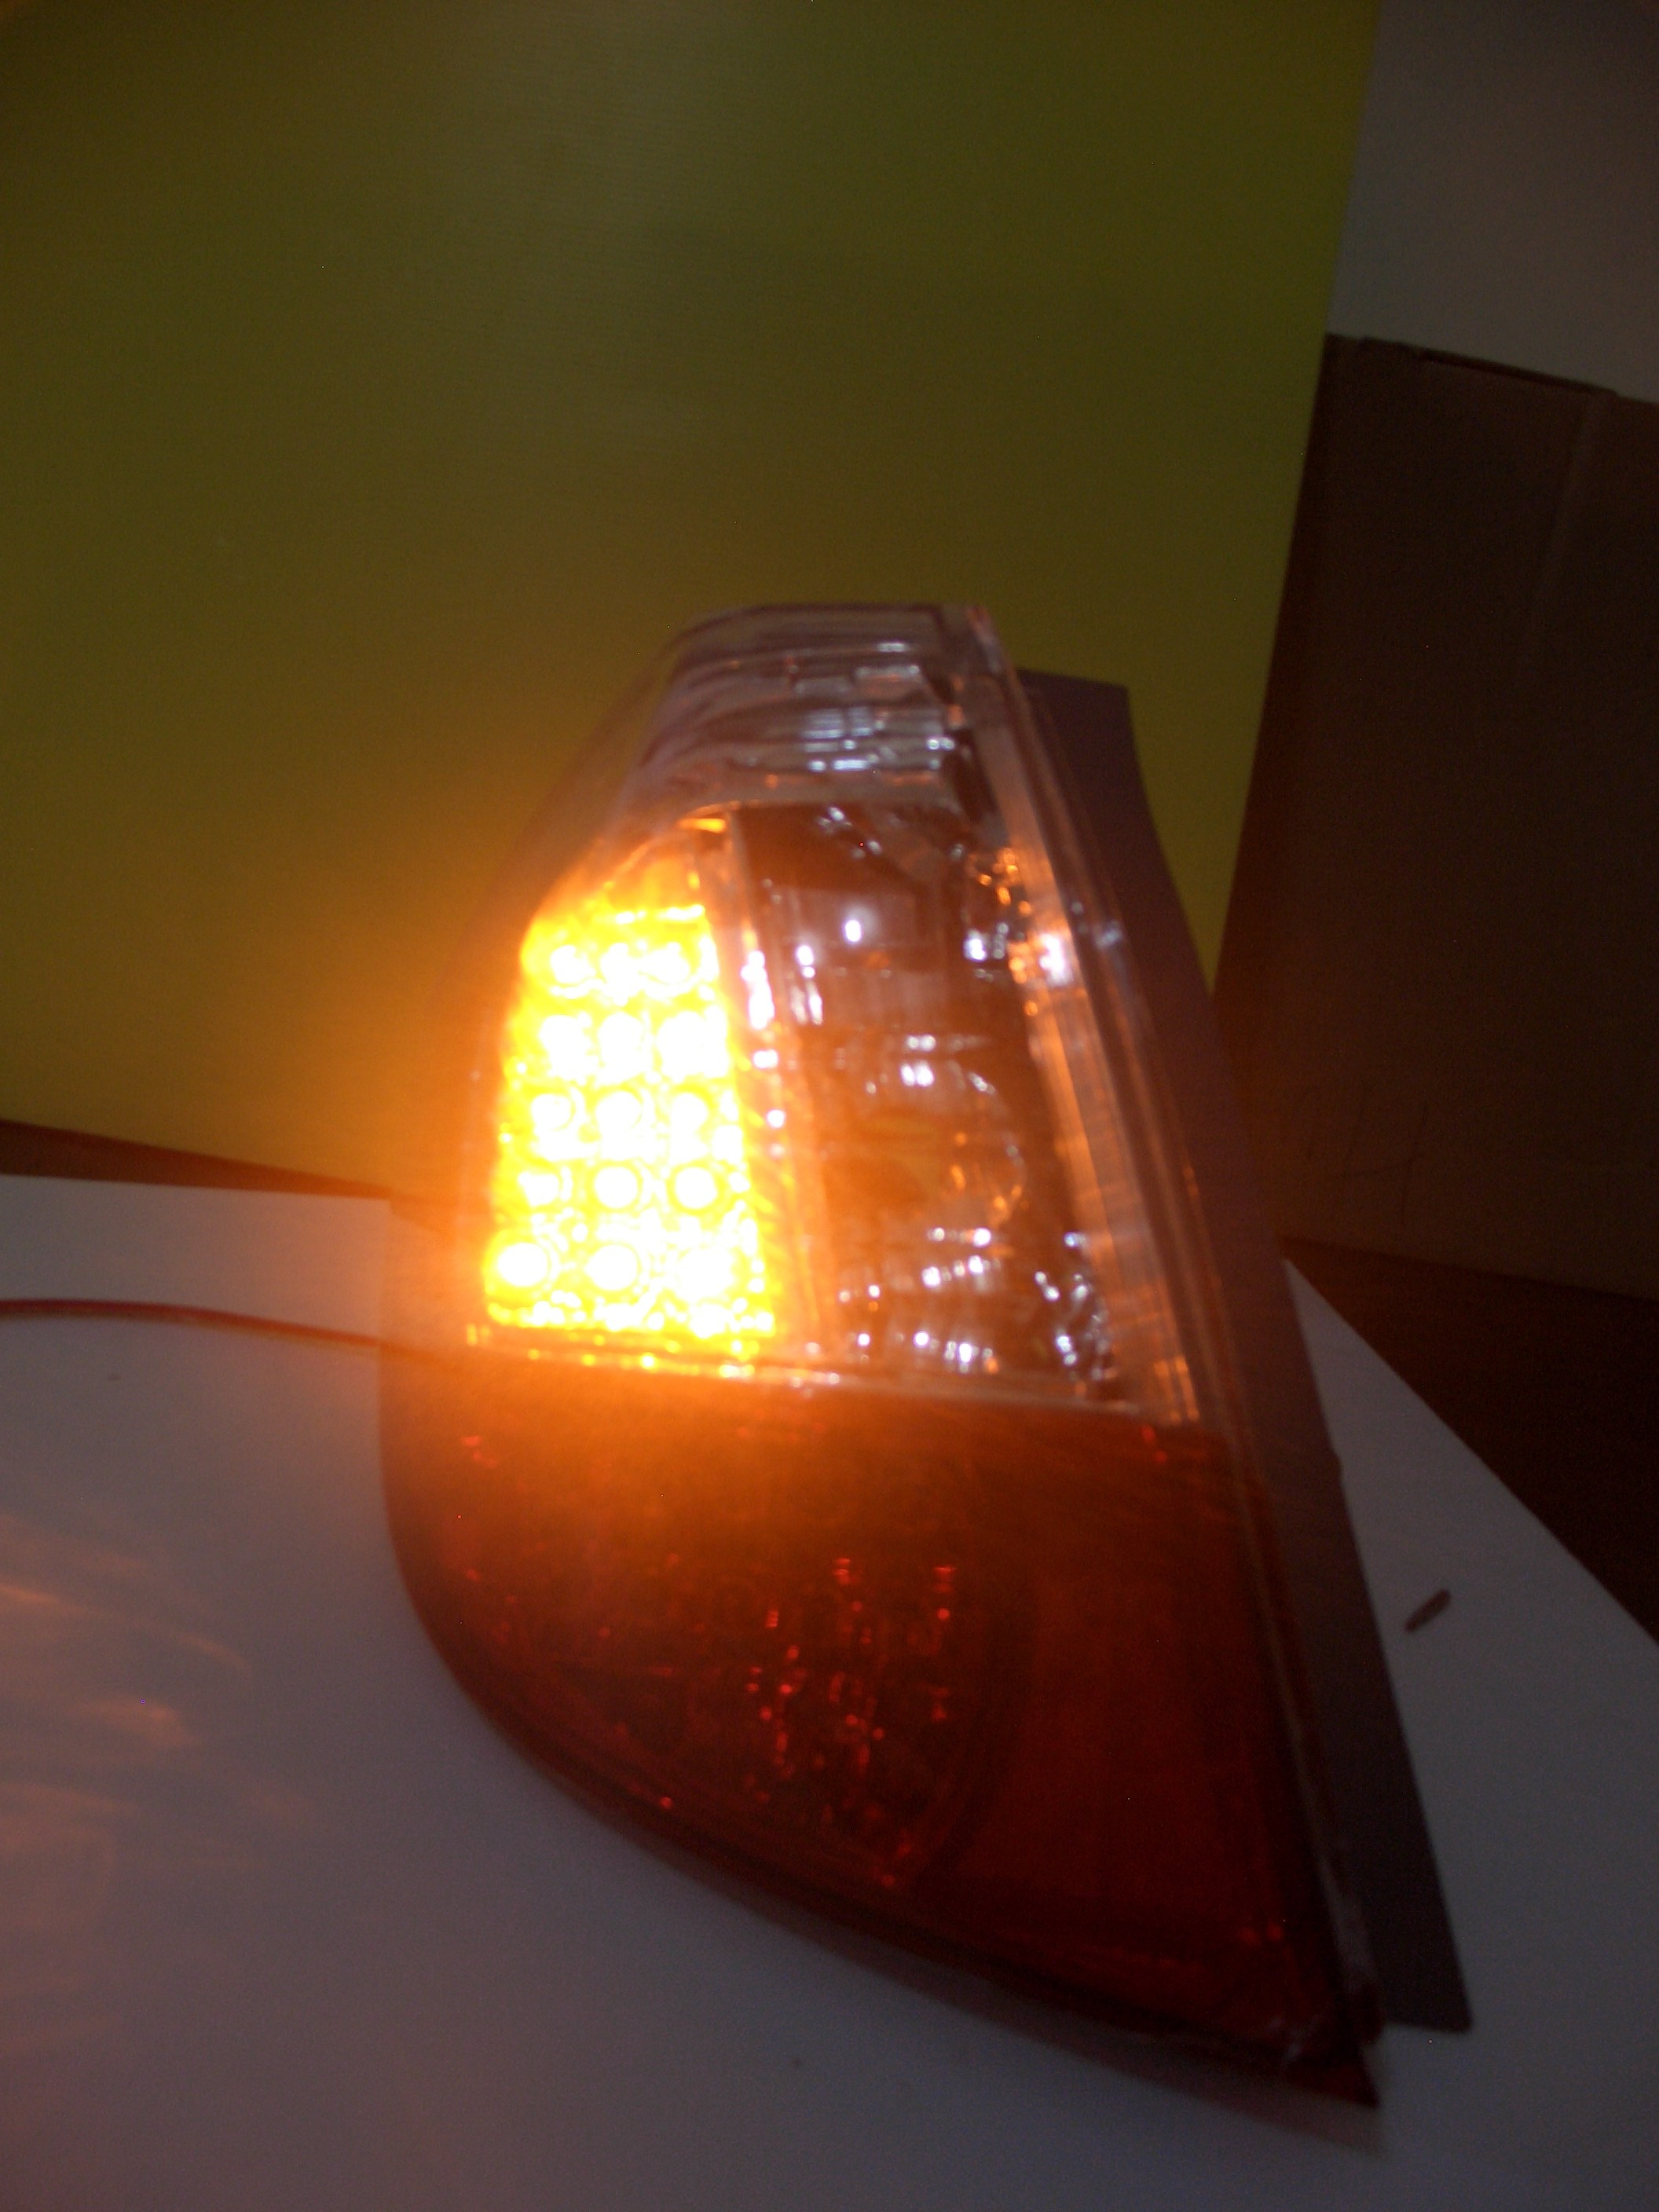 stop lamp led grand new veloz all-new toyota camry (acv 70) jazz ee eagle eyes icmodification